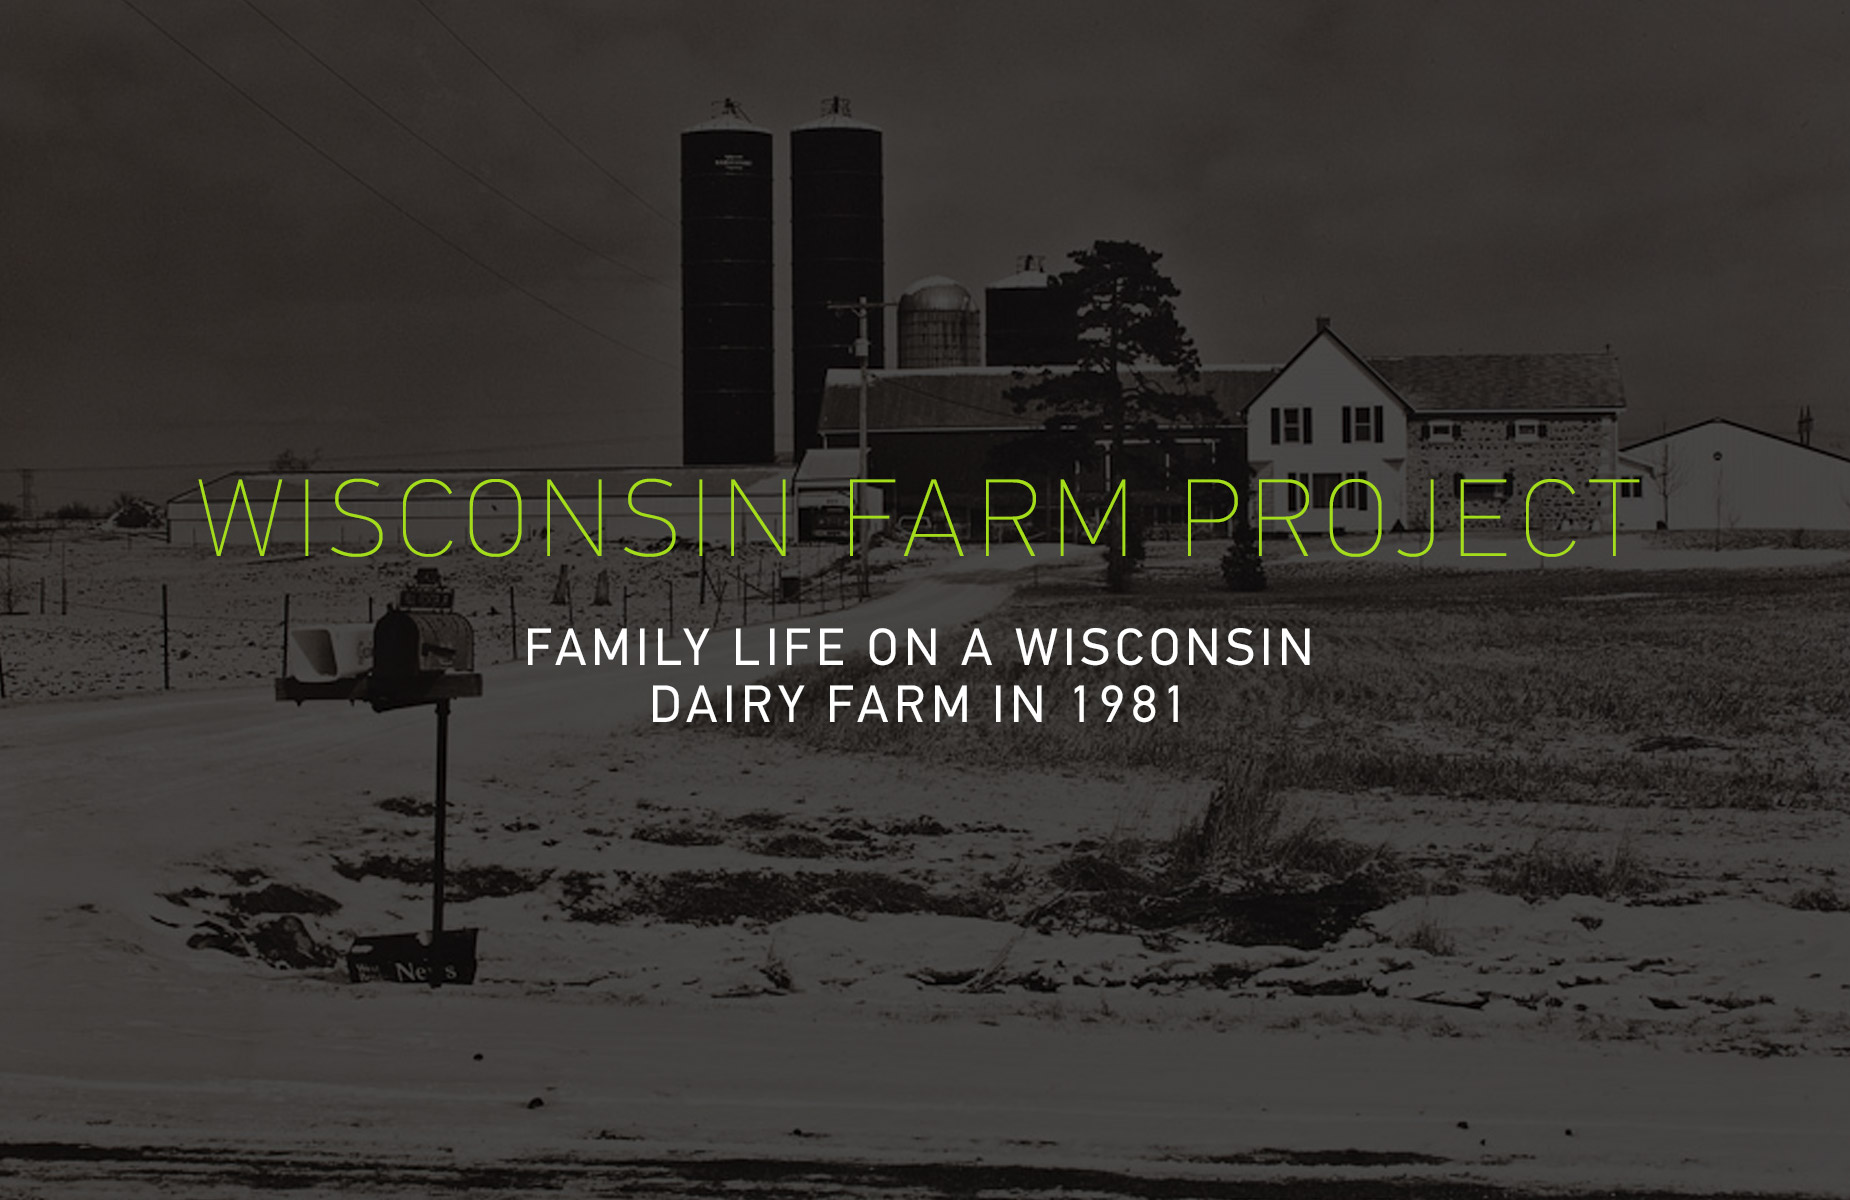 Wisconsin Farm Project